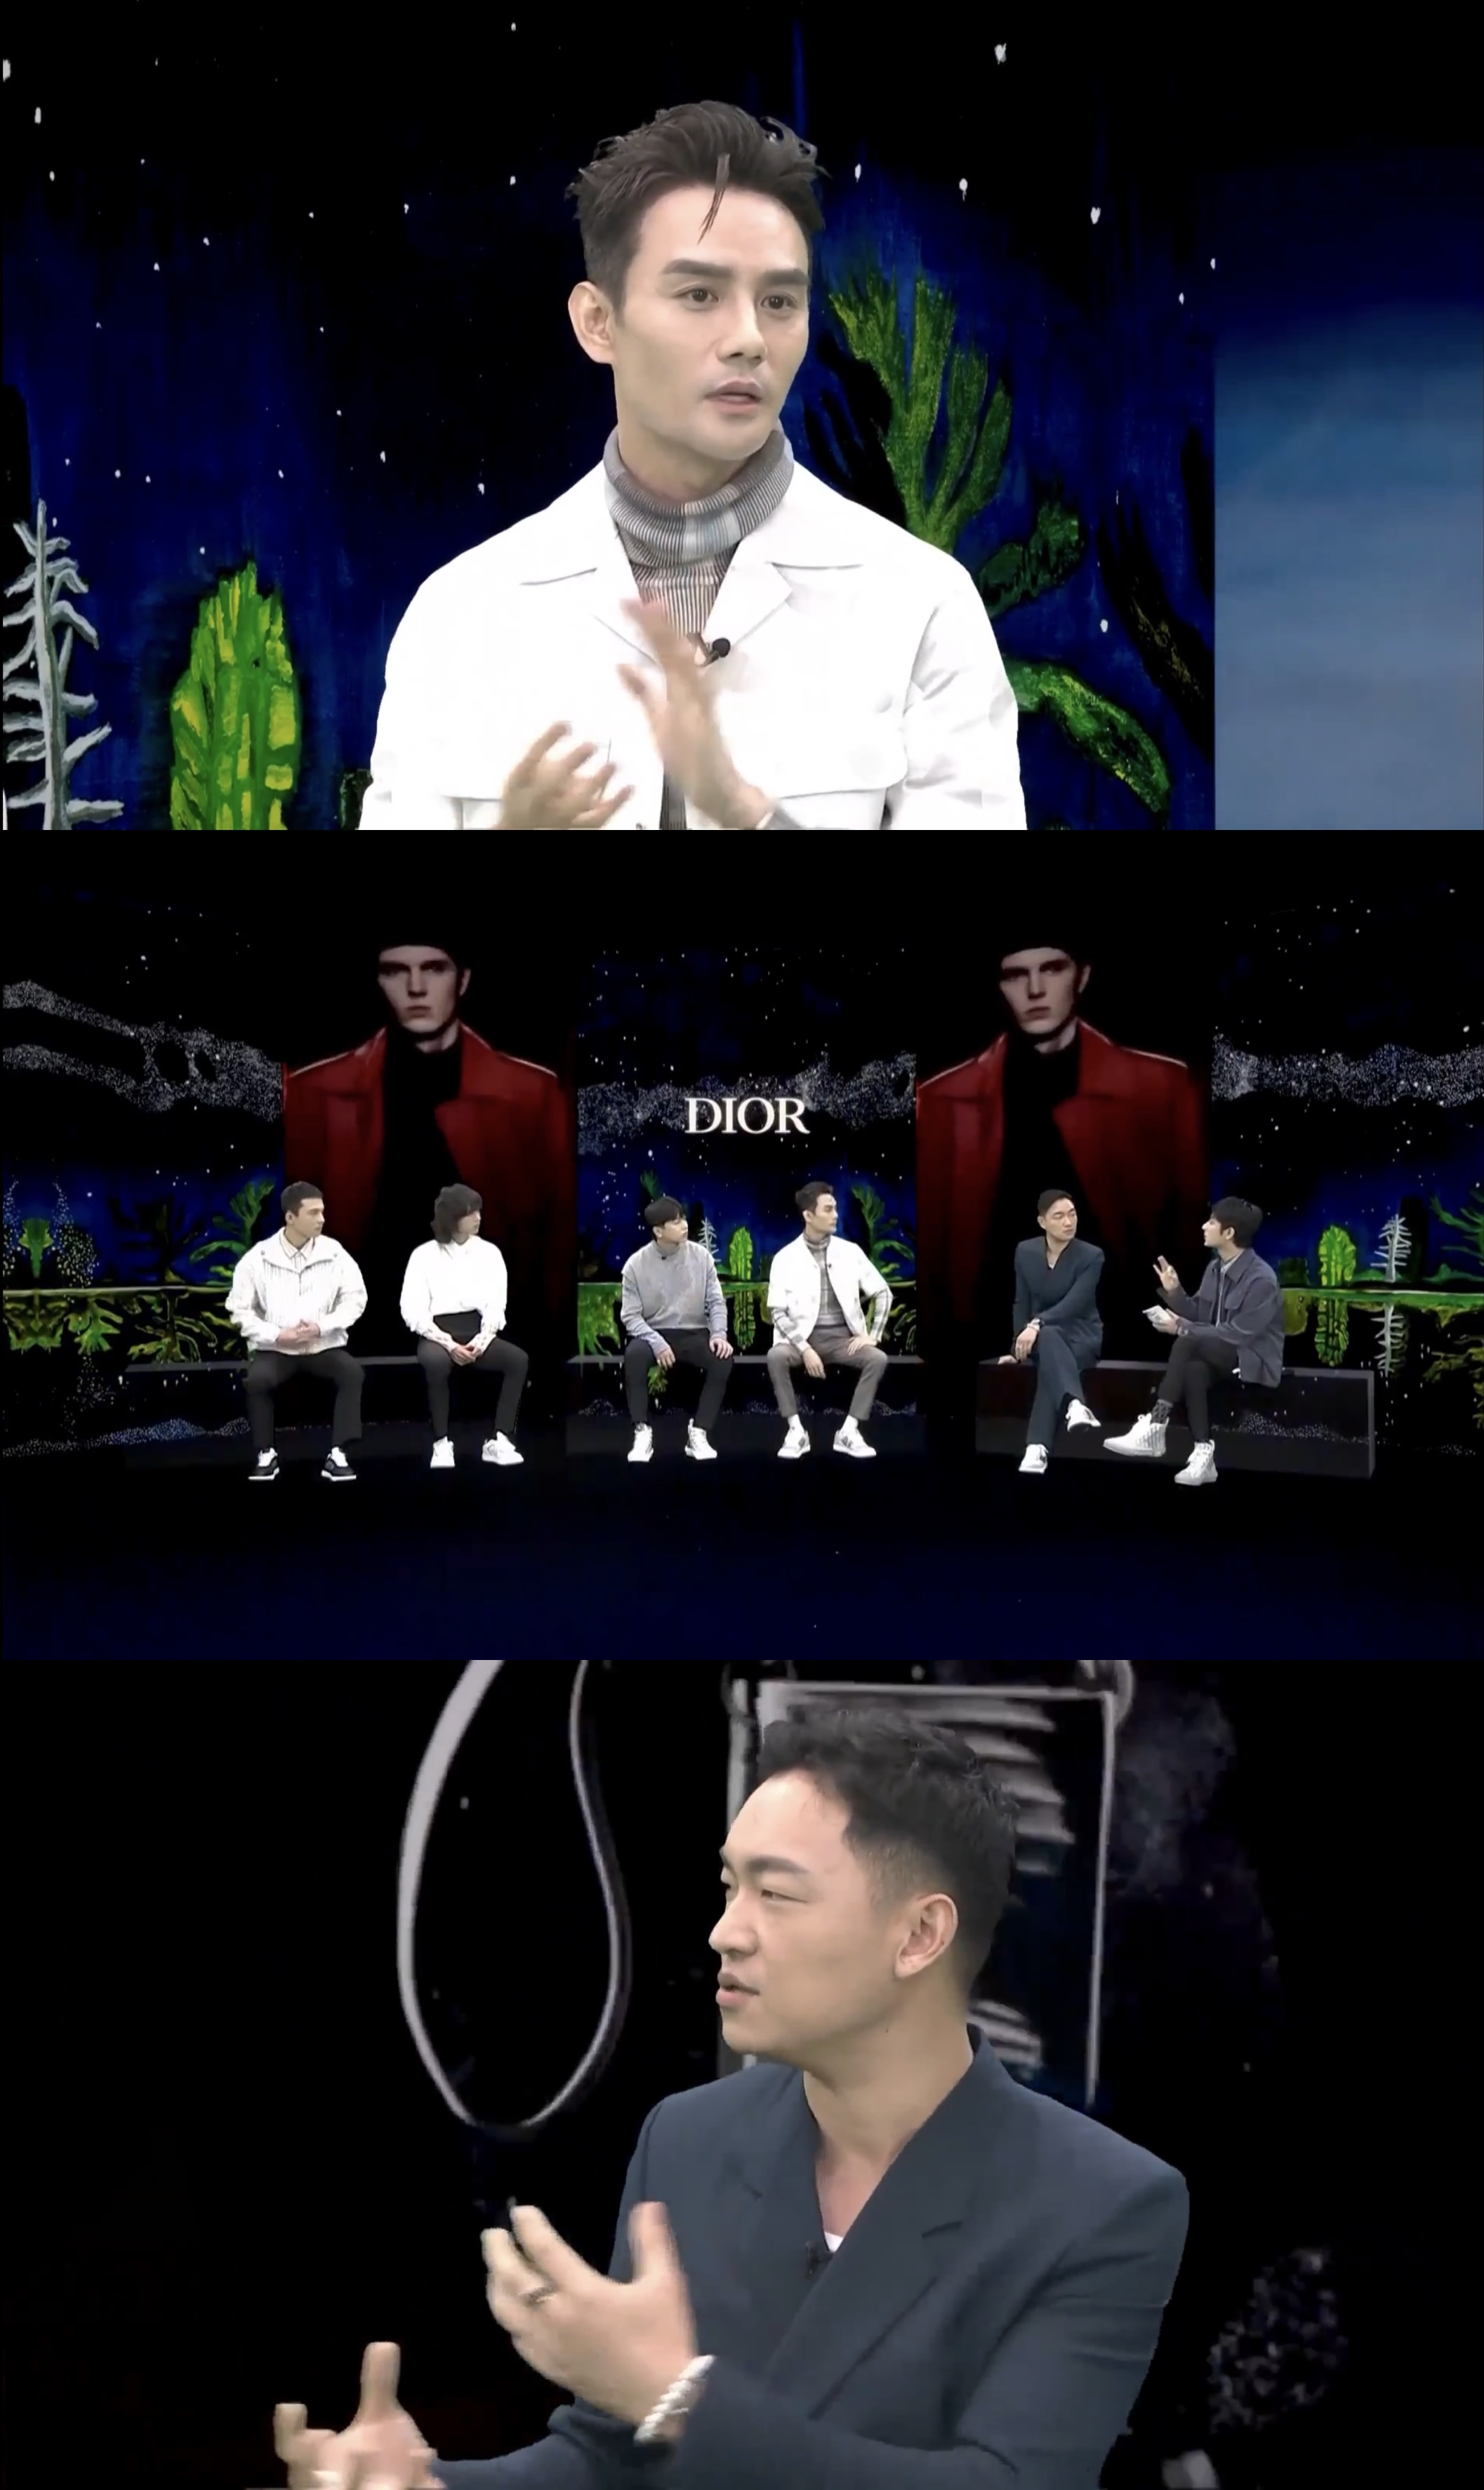 Screenshots of Dior Men's panel discussion featuring brand ambassadors, friends of the house and fashion editors, after its pre fall 2021 show in Beijing, which is a part of its live streaming in China.